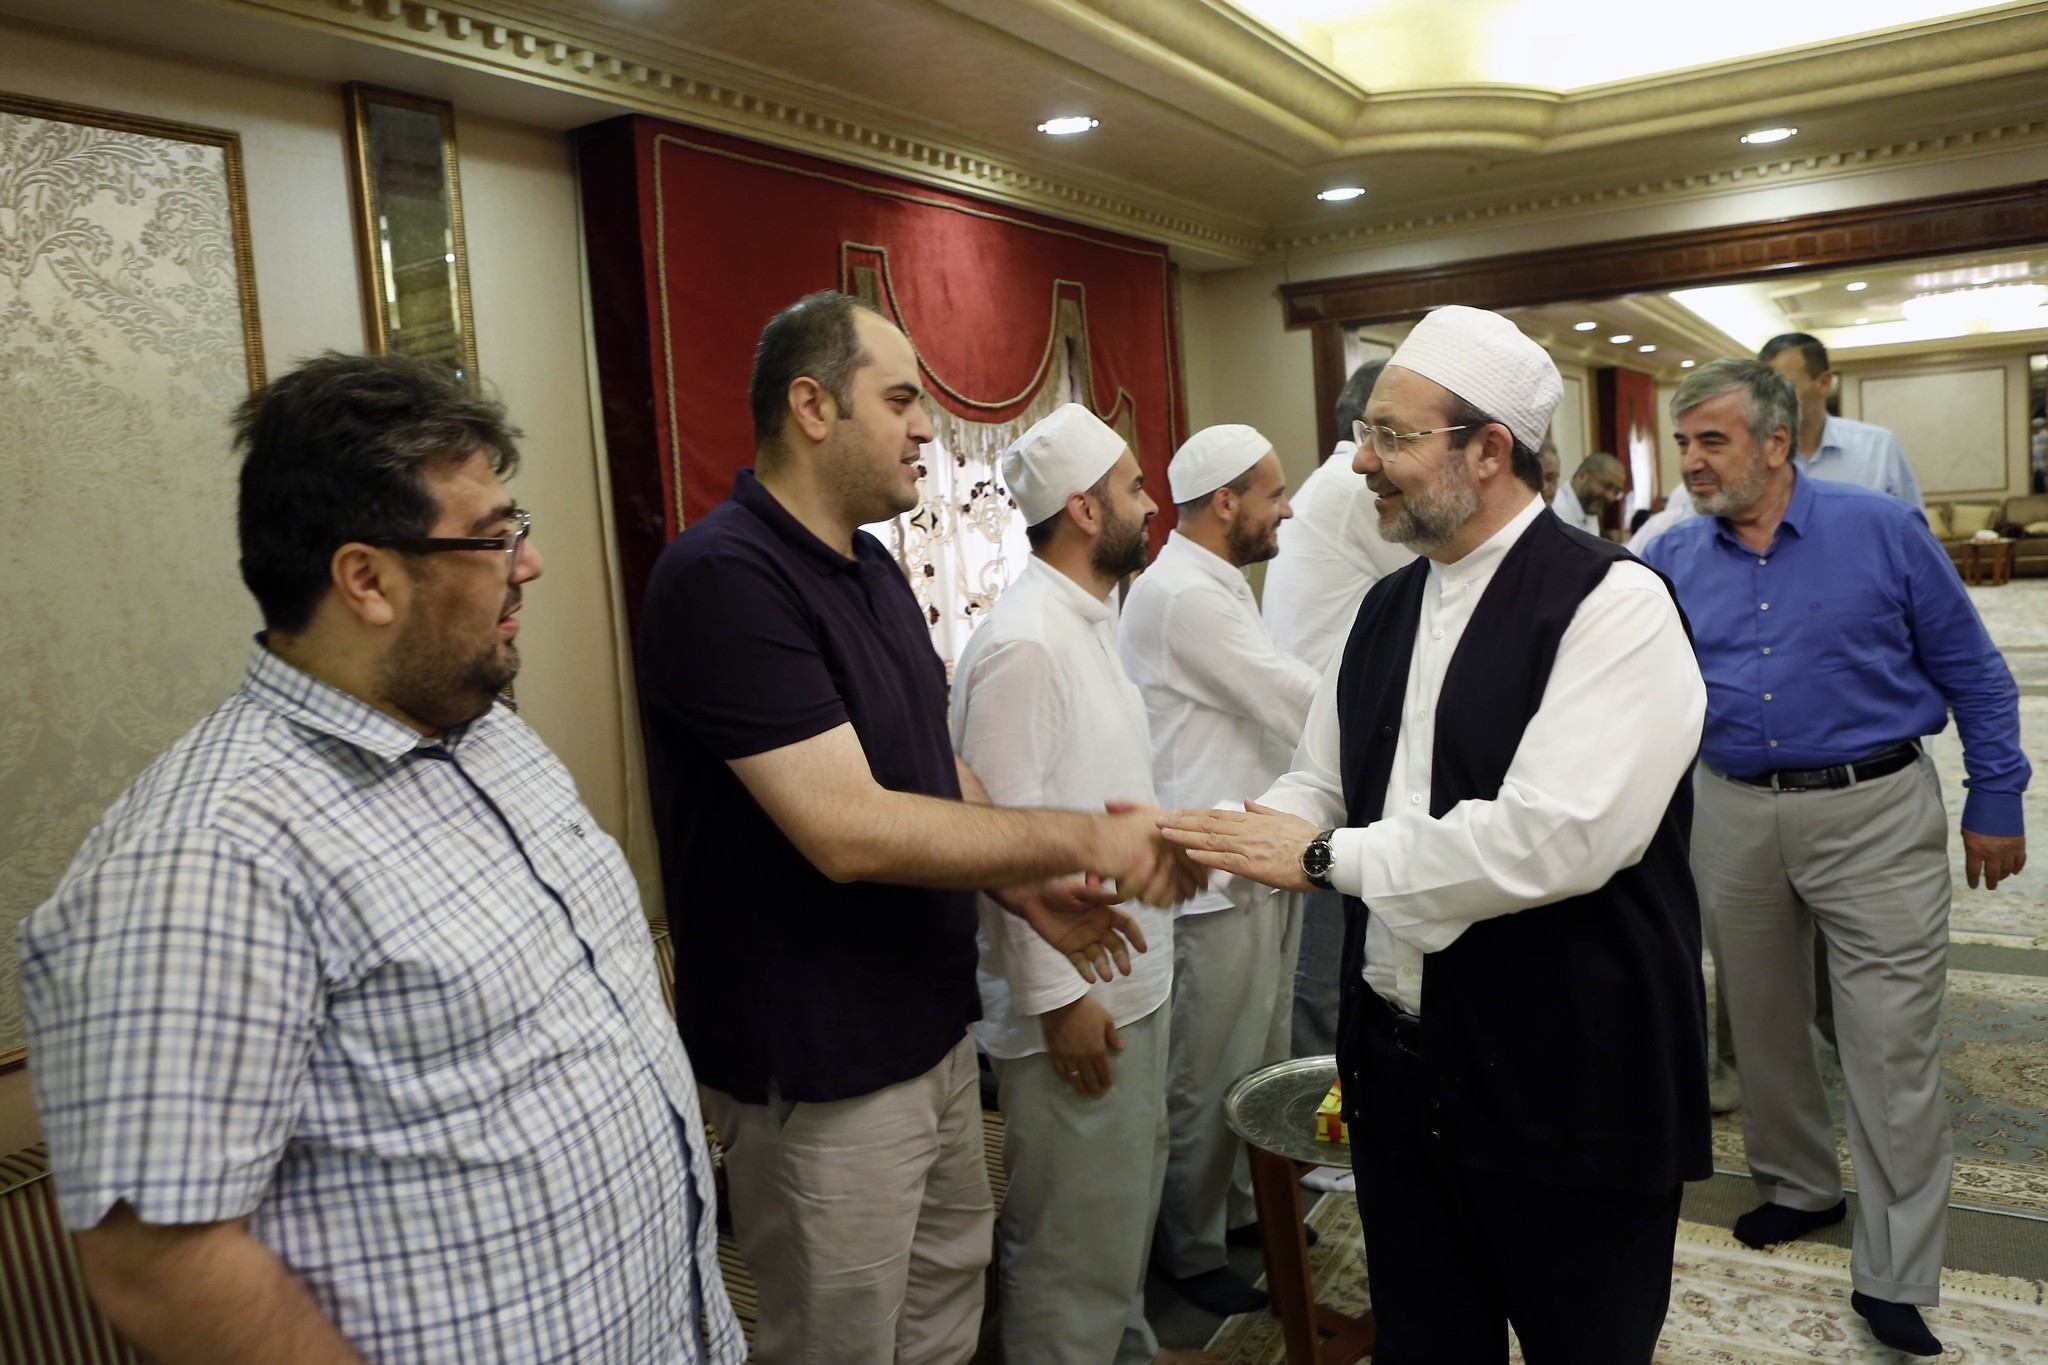 Speaking at Hajj Administrative Center in Mecca, Mehmet Gu00f6rmez, the head of the Religious Affairs Directorate, congratulated Muslims in Mecca, Saudi Arabia on Sept. 13, 2016. (AA Photo)